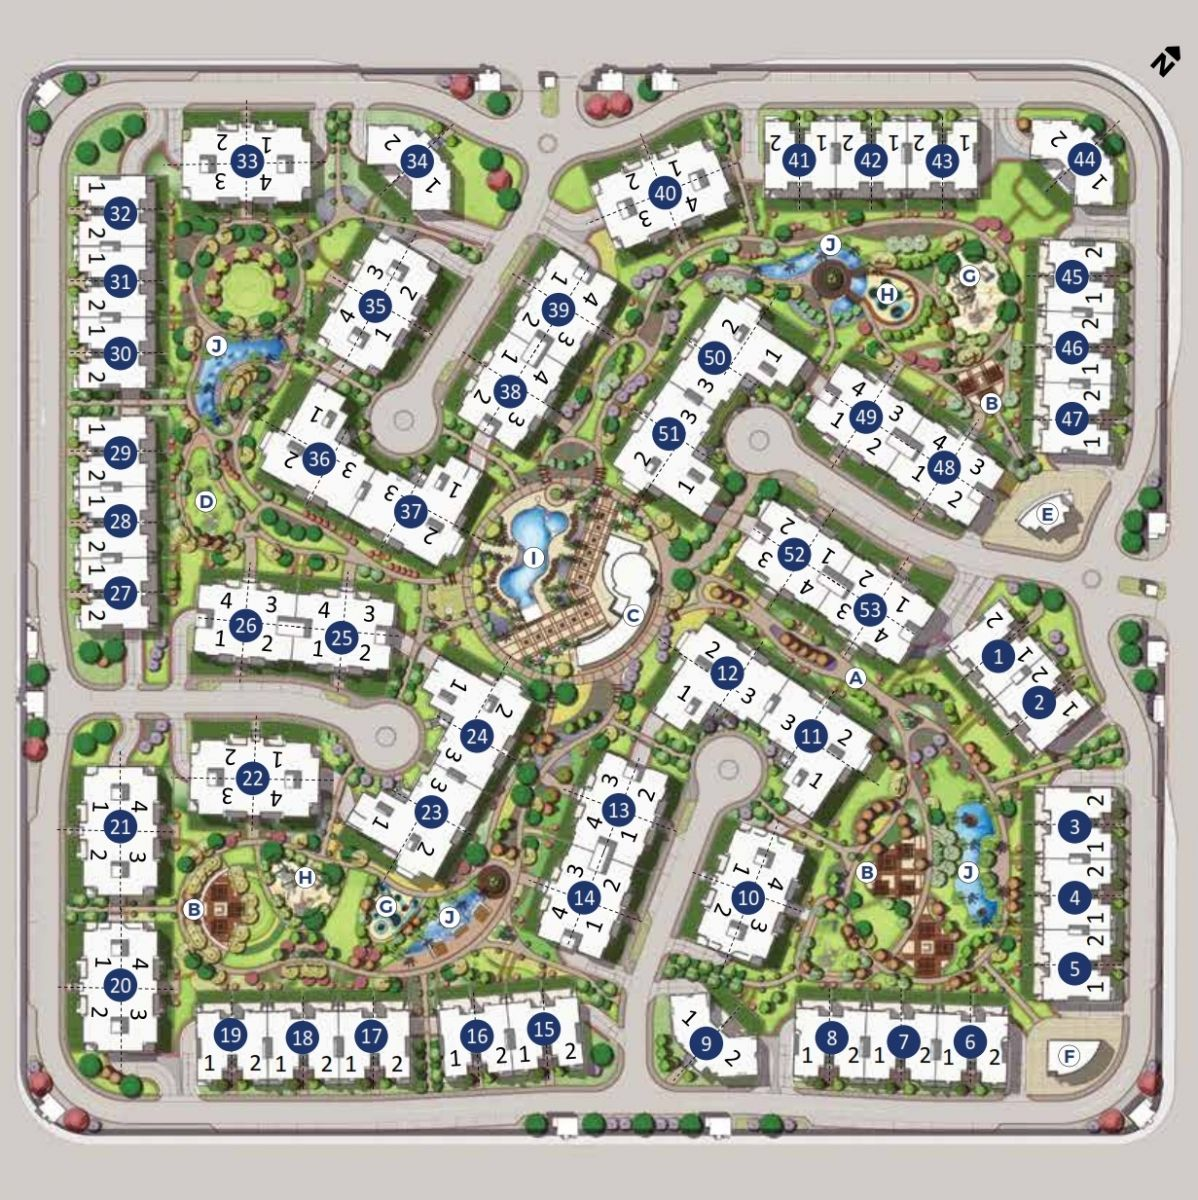 October Plaza Master Plan